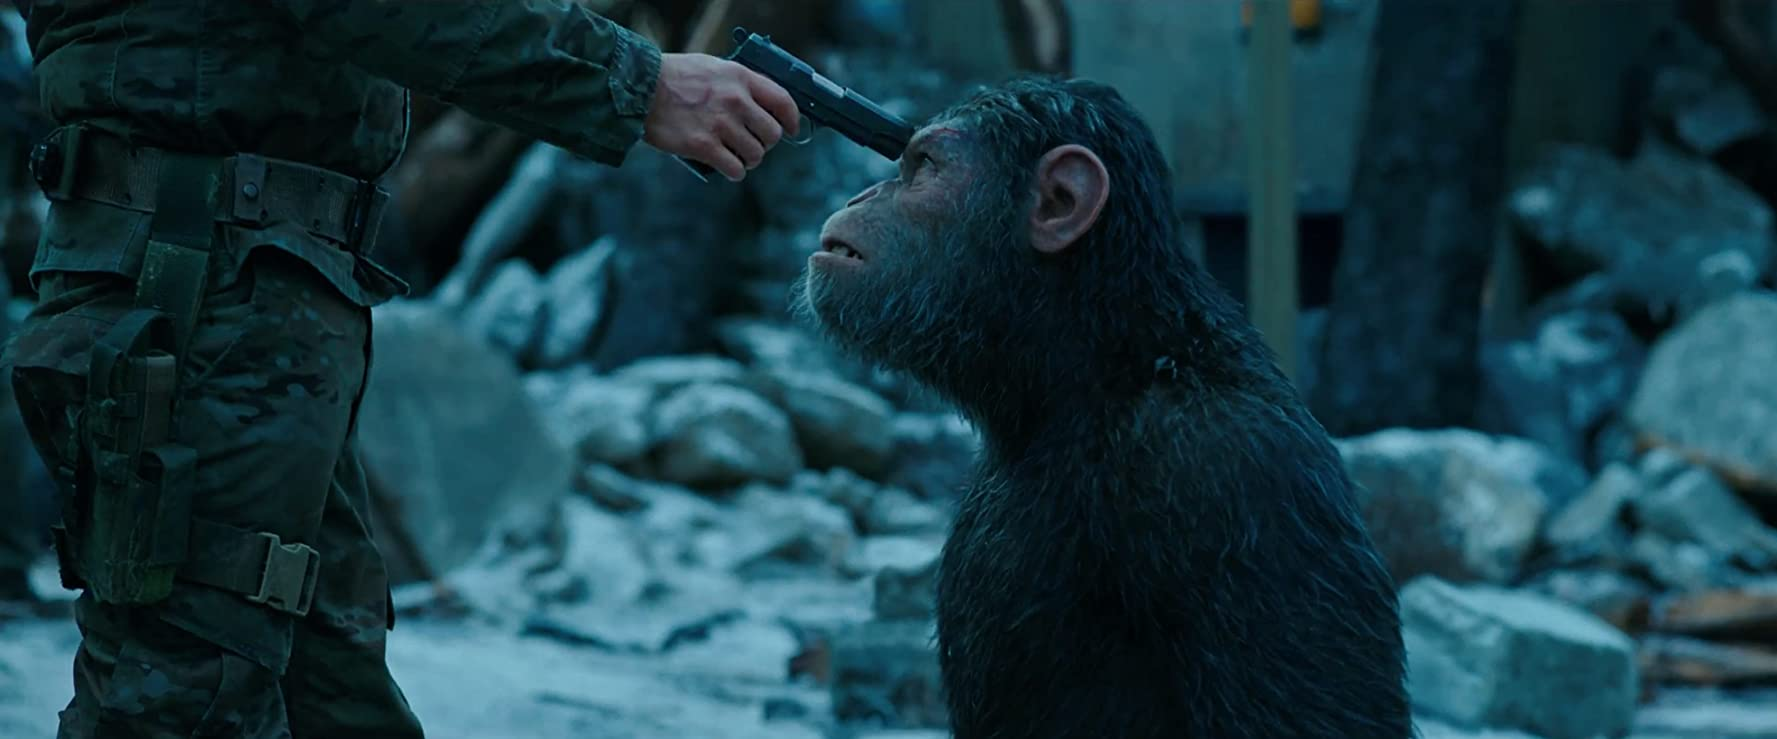 Woody Harrelson and Andy Serkis in War for the Planet of the Apes (2017)